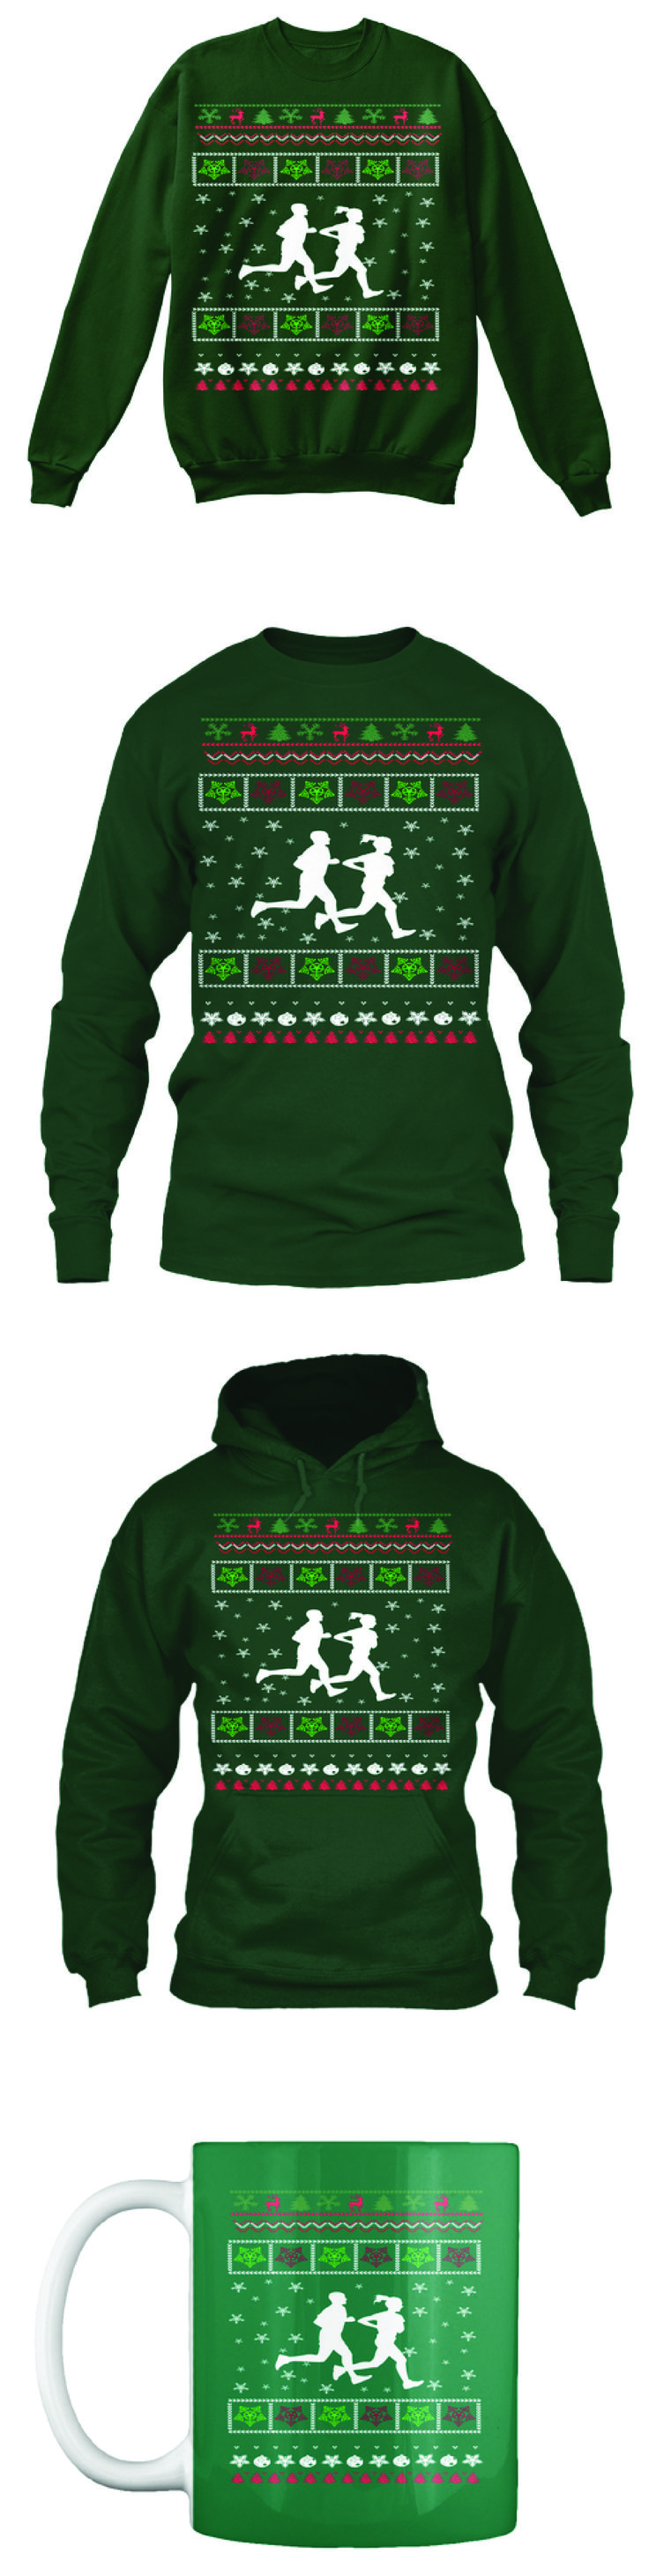 Running Ugly Christmas Sweater,Long Sleeve Tee,Hoodies And Mug Don't miss the deadline, Buy Now! #BoostedChristmas womens christmas sweaters cheap christmas sweaters funny christmas sweaters matching christmas sweaters light up christmas sweater inappropriate christmas sweaters cute christmas sweaters Ugly Christmas tee Ugly Christmas dress Ugly Christmas shirts Ugly Christmas t shirts